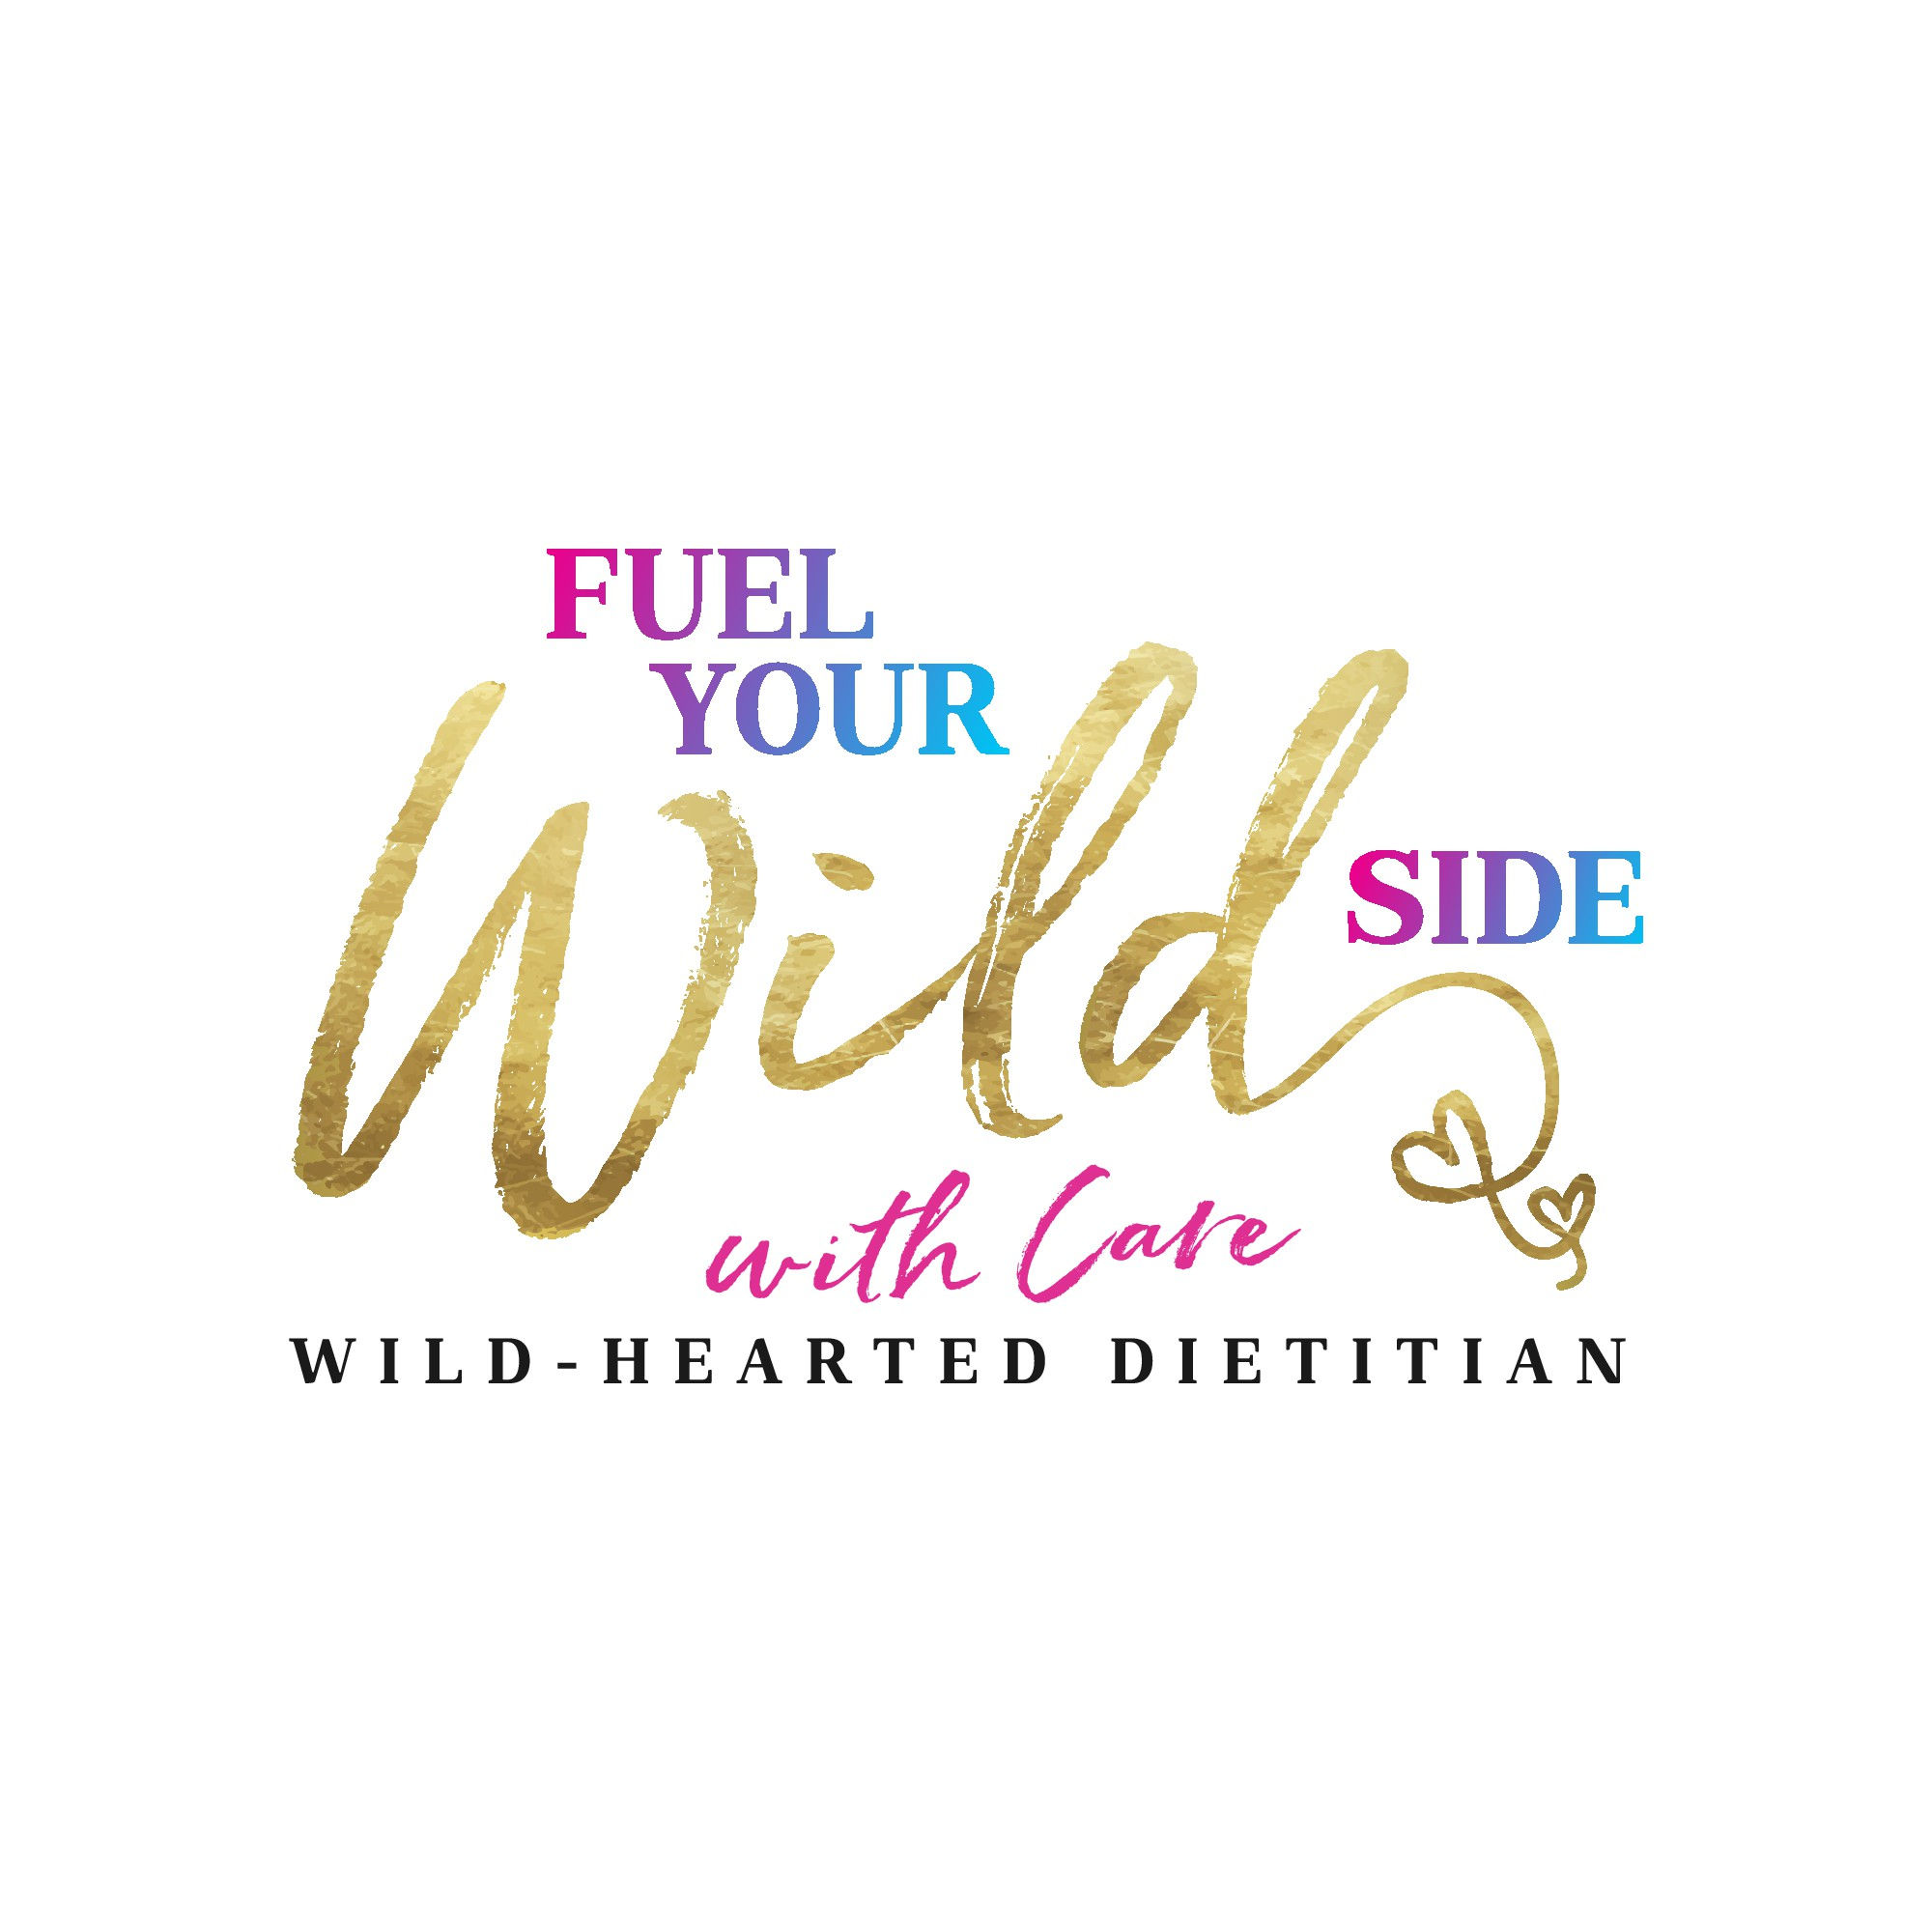 Fuel Your Wild Side